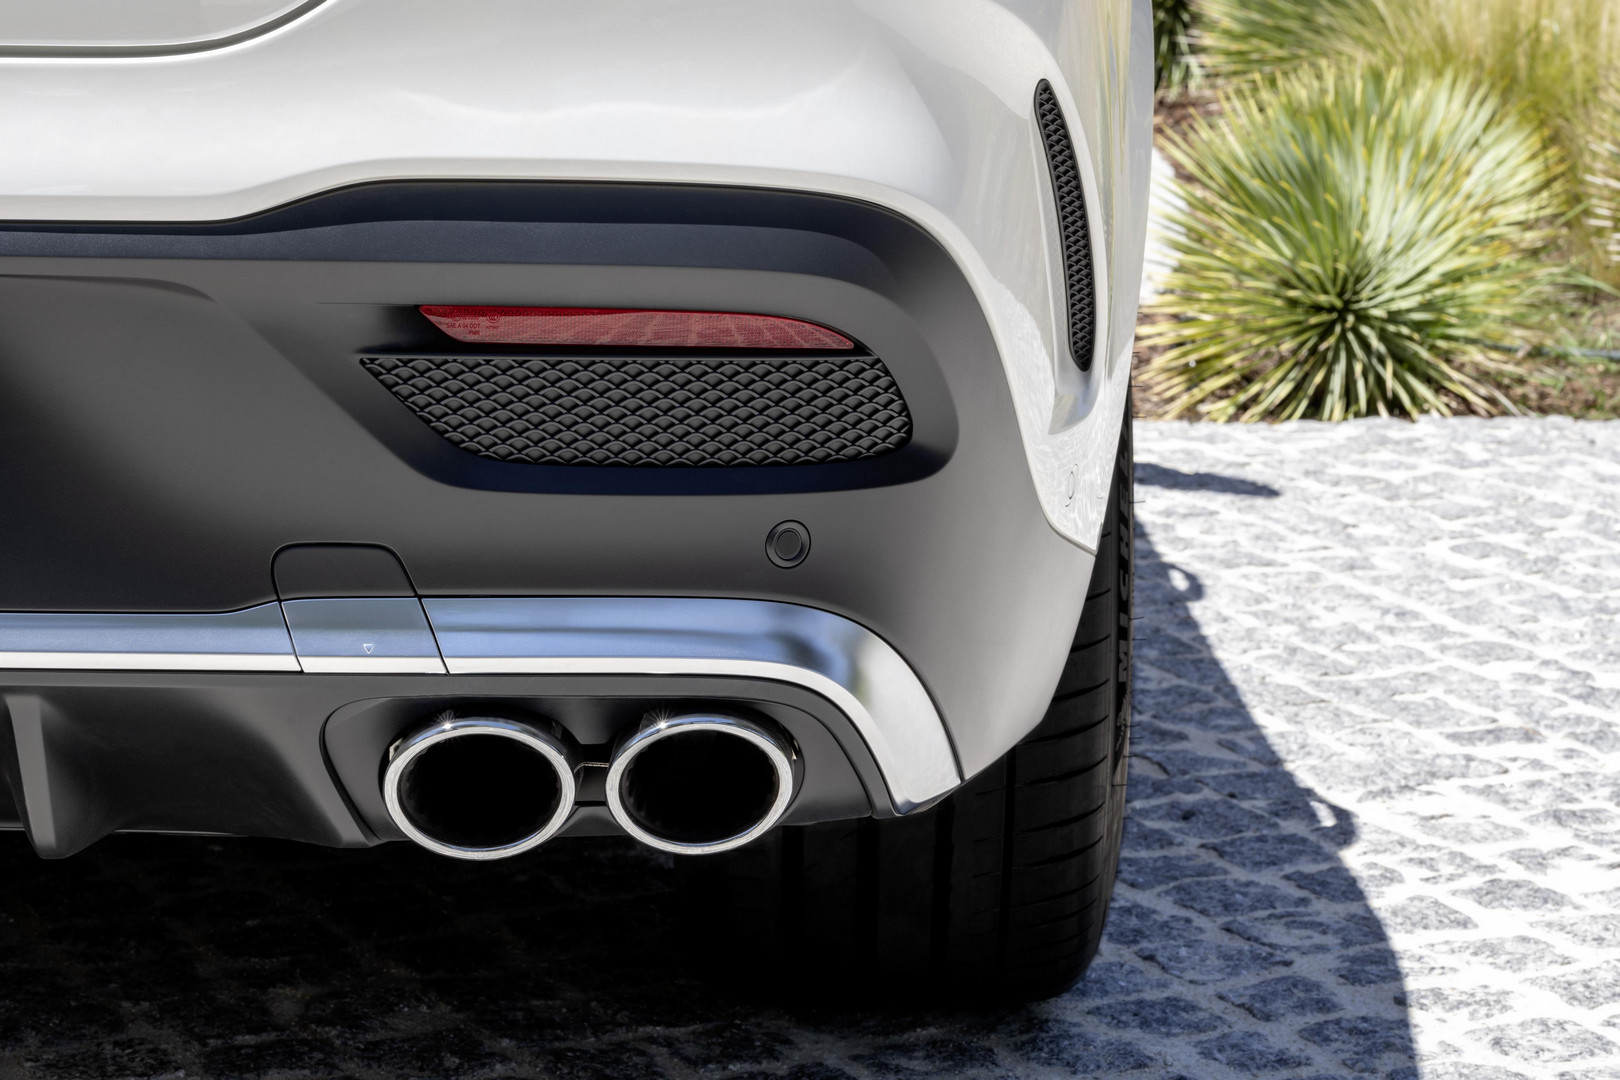 Mercedes-AMG GLE 53 Coupe Exhaust Pipes